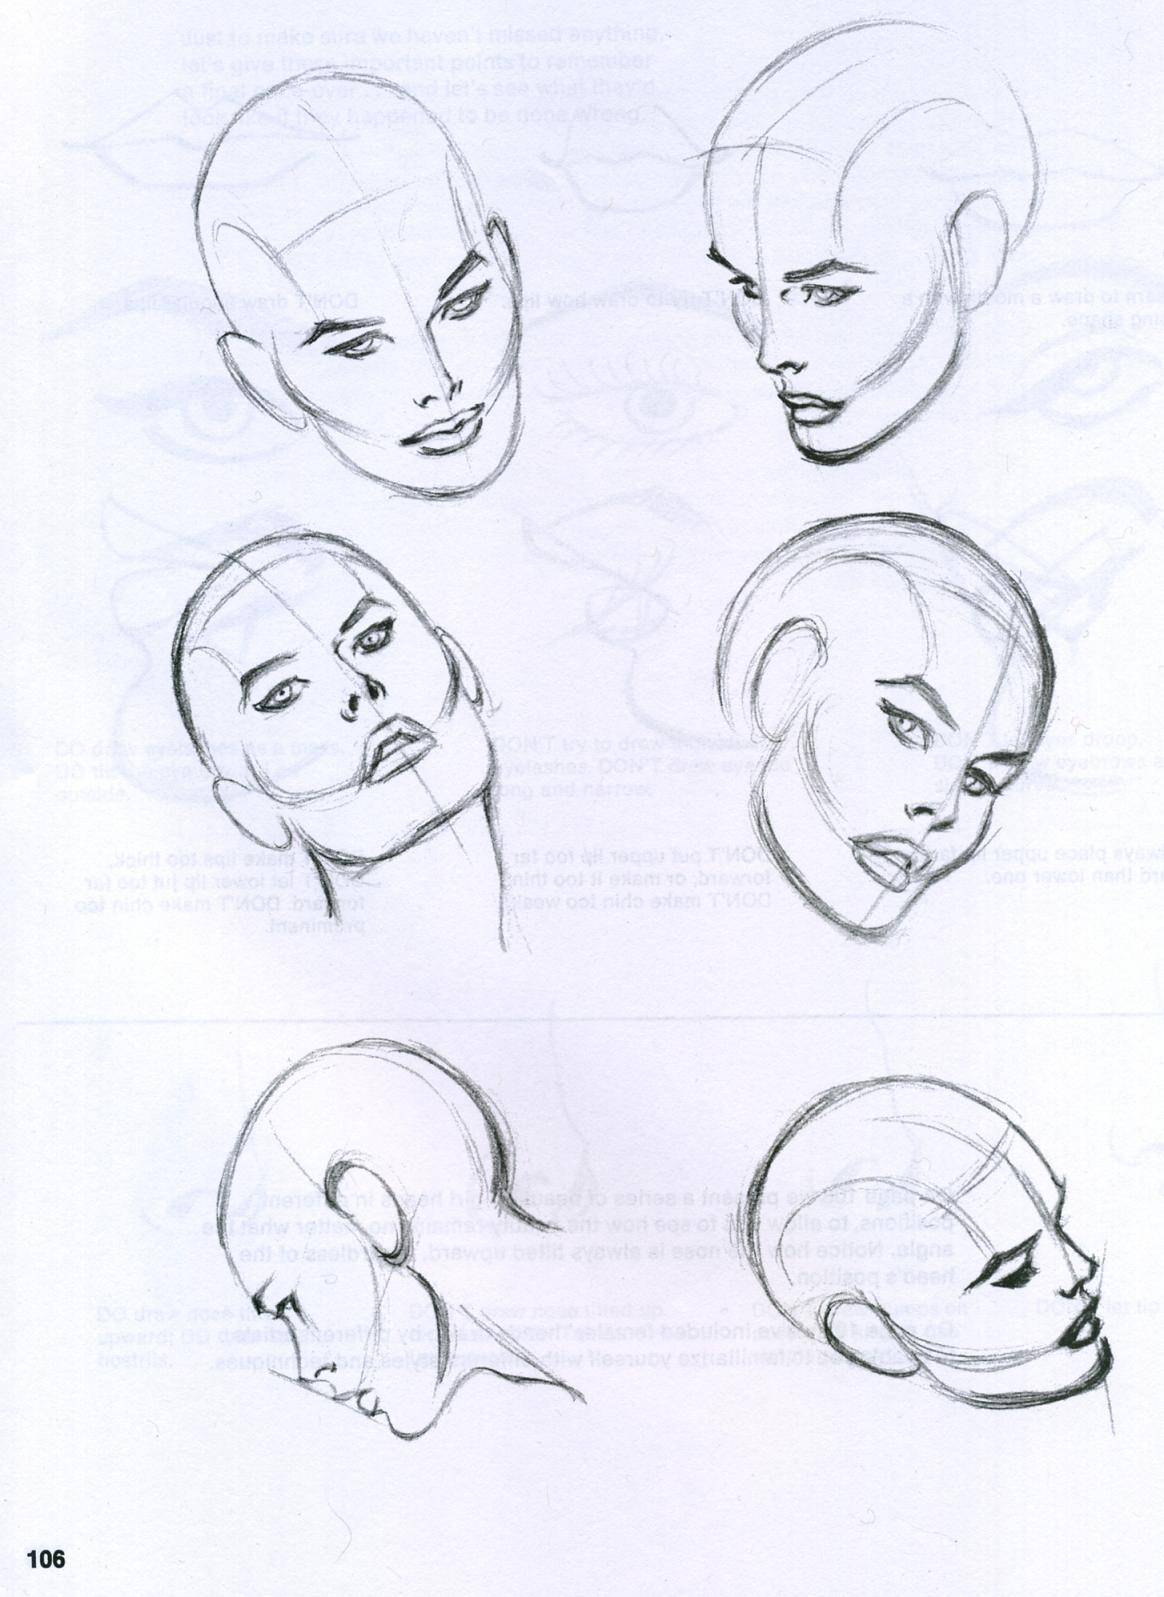 john buscema figure and head lessons (26)